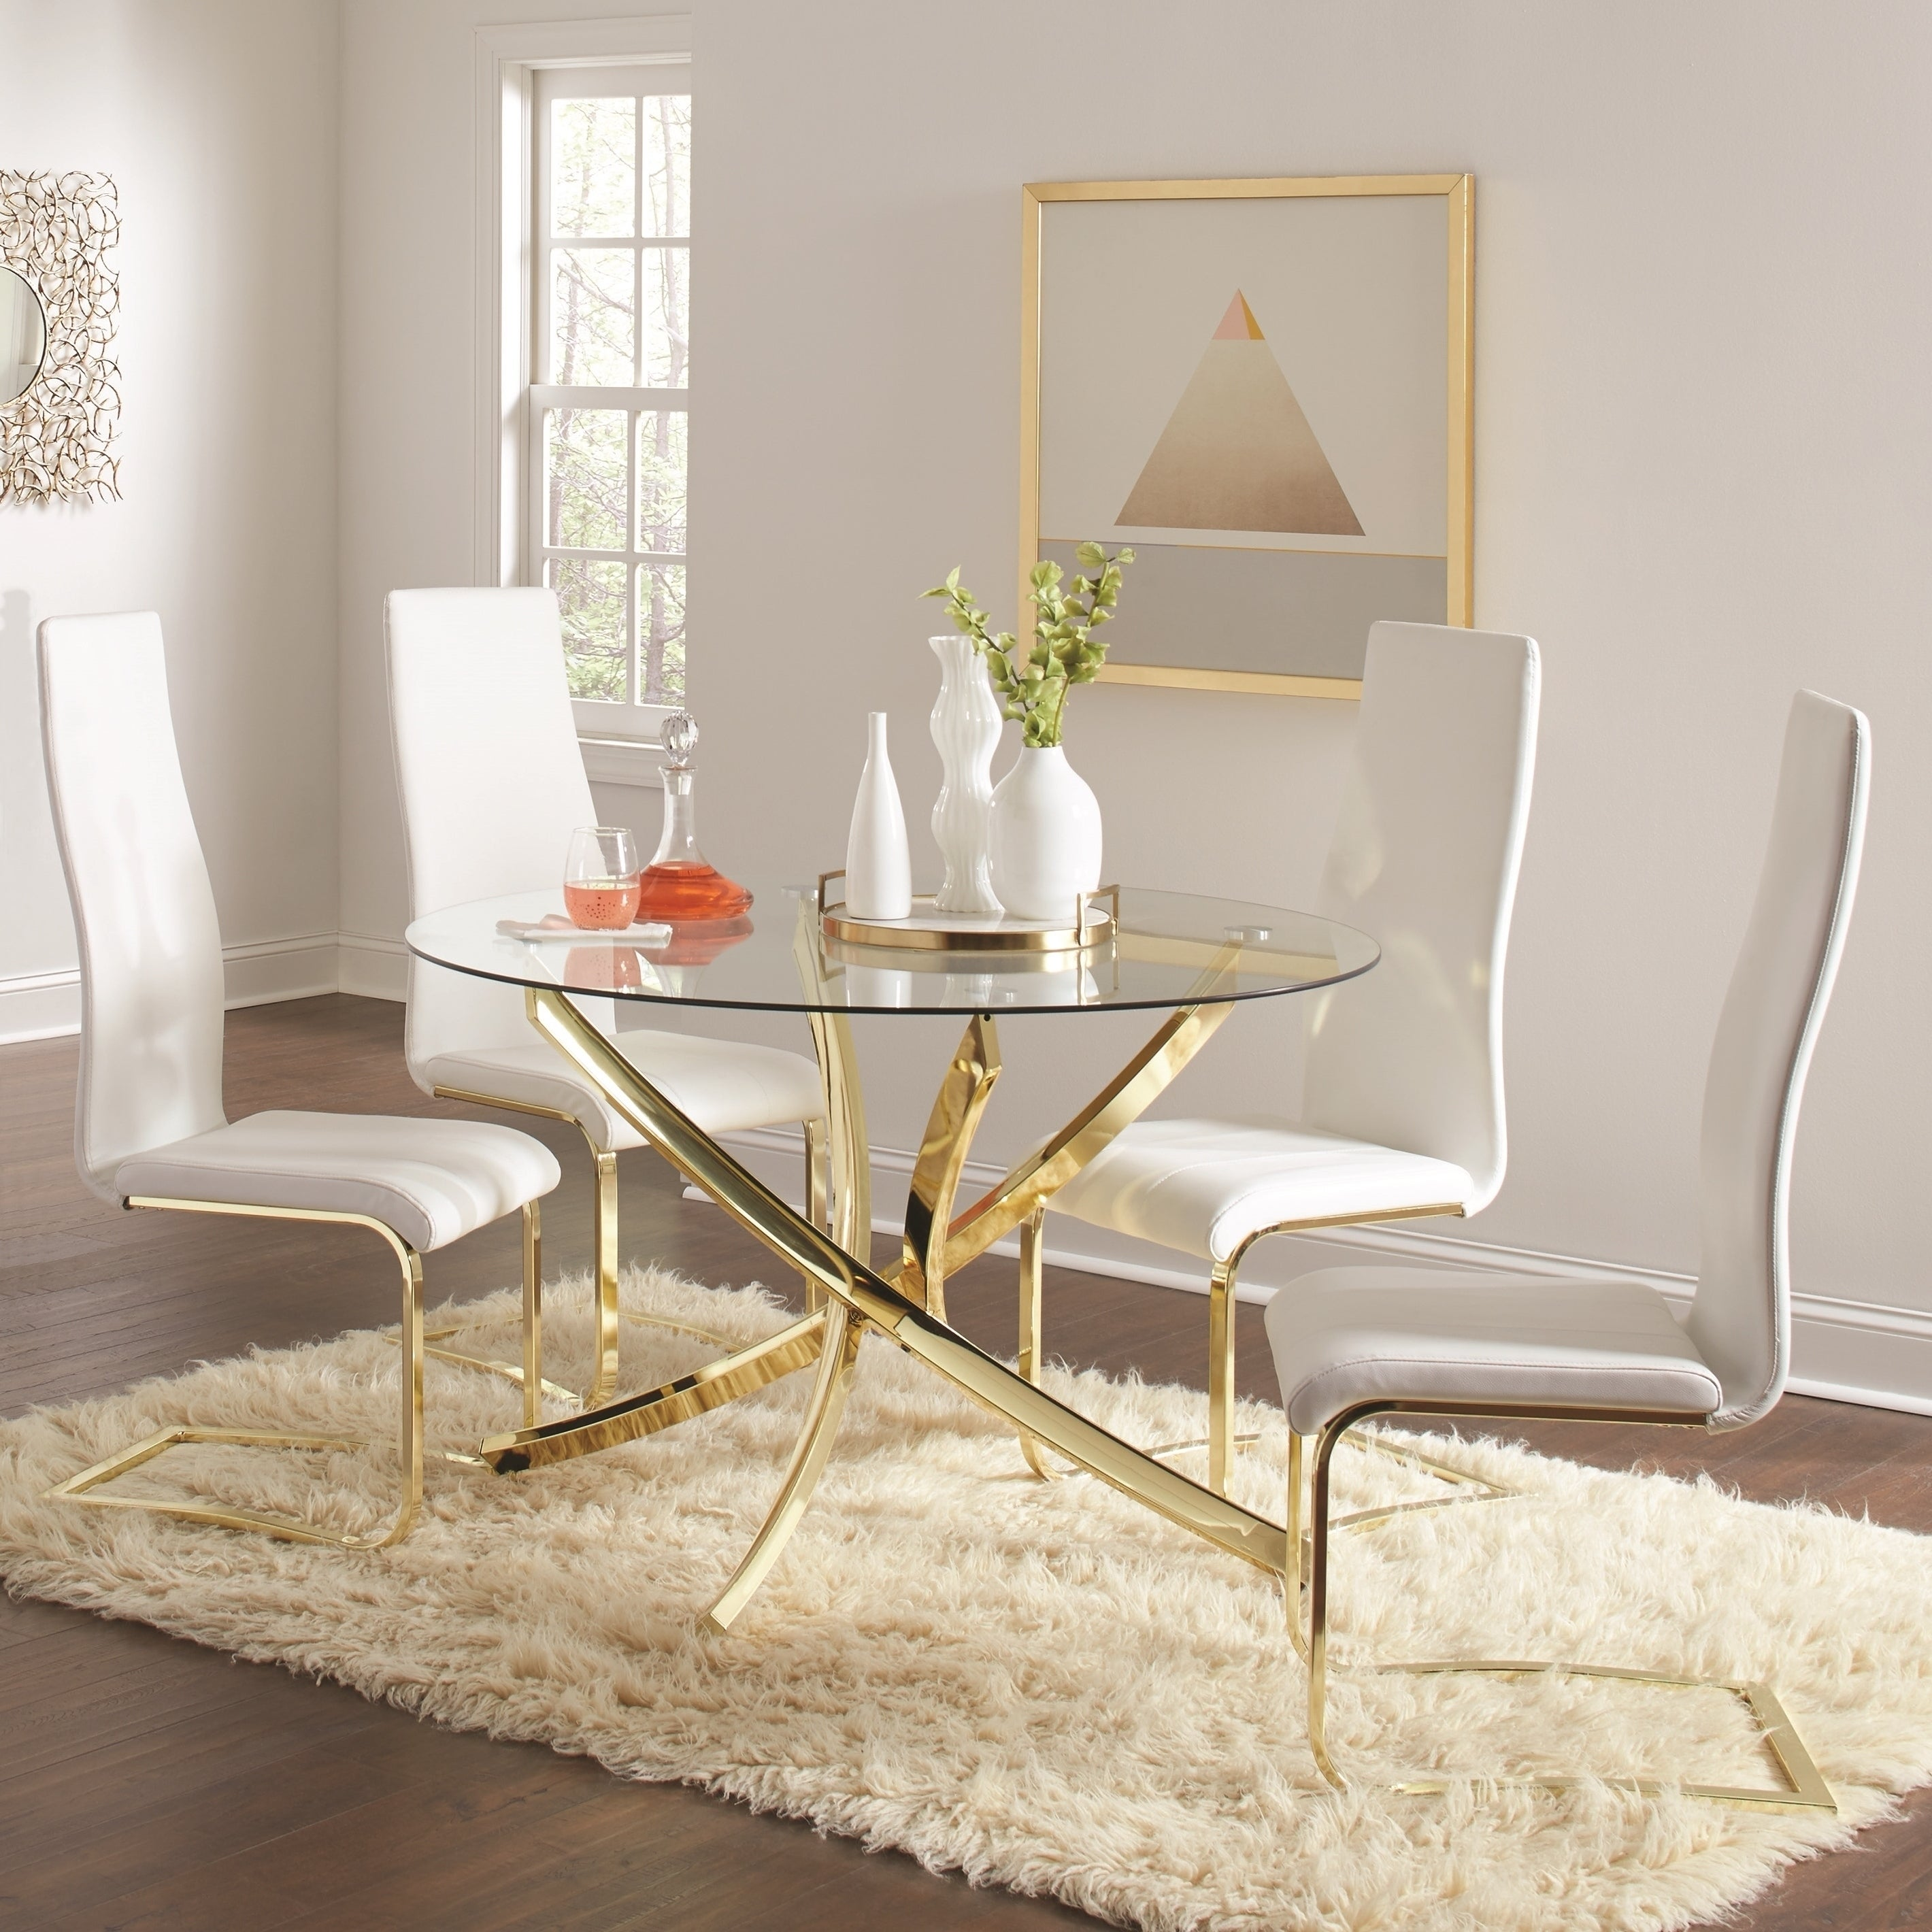 Glass Top/Gold Metal Base/Leatherette Chairs Modern 5-piece Dining Set